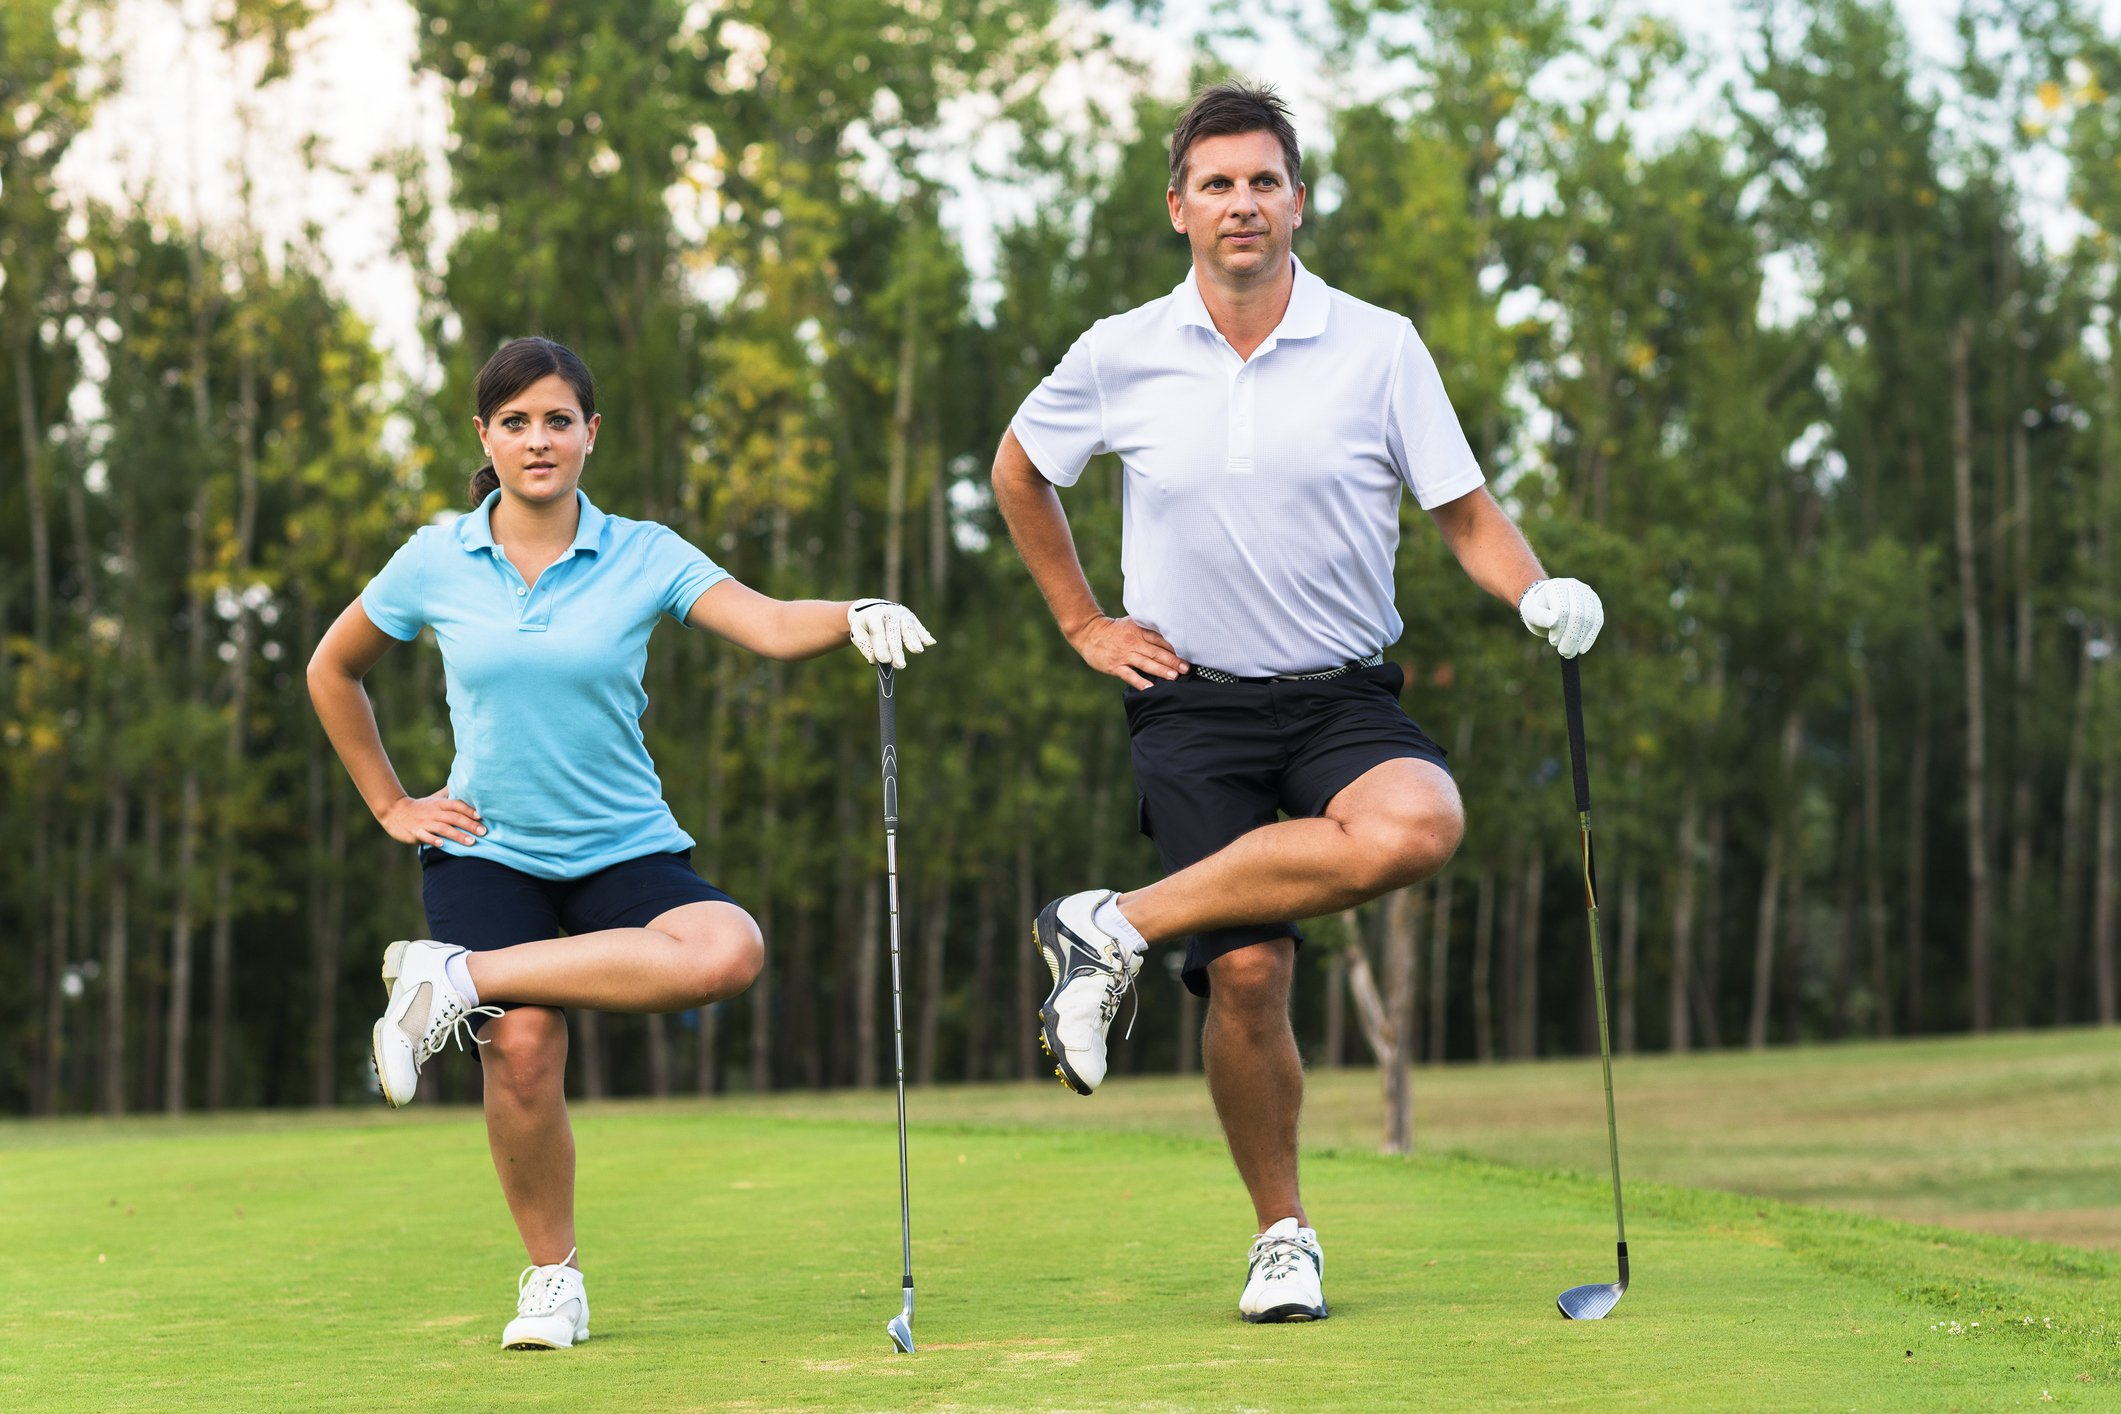 Two golfers are taking tree pose in CoxHealth's yoga for golfers class.